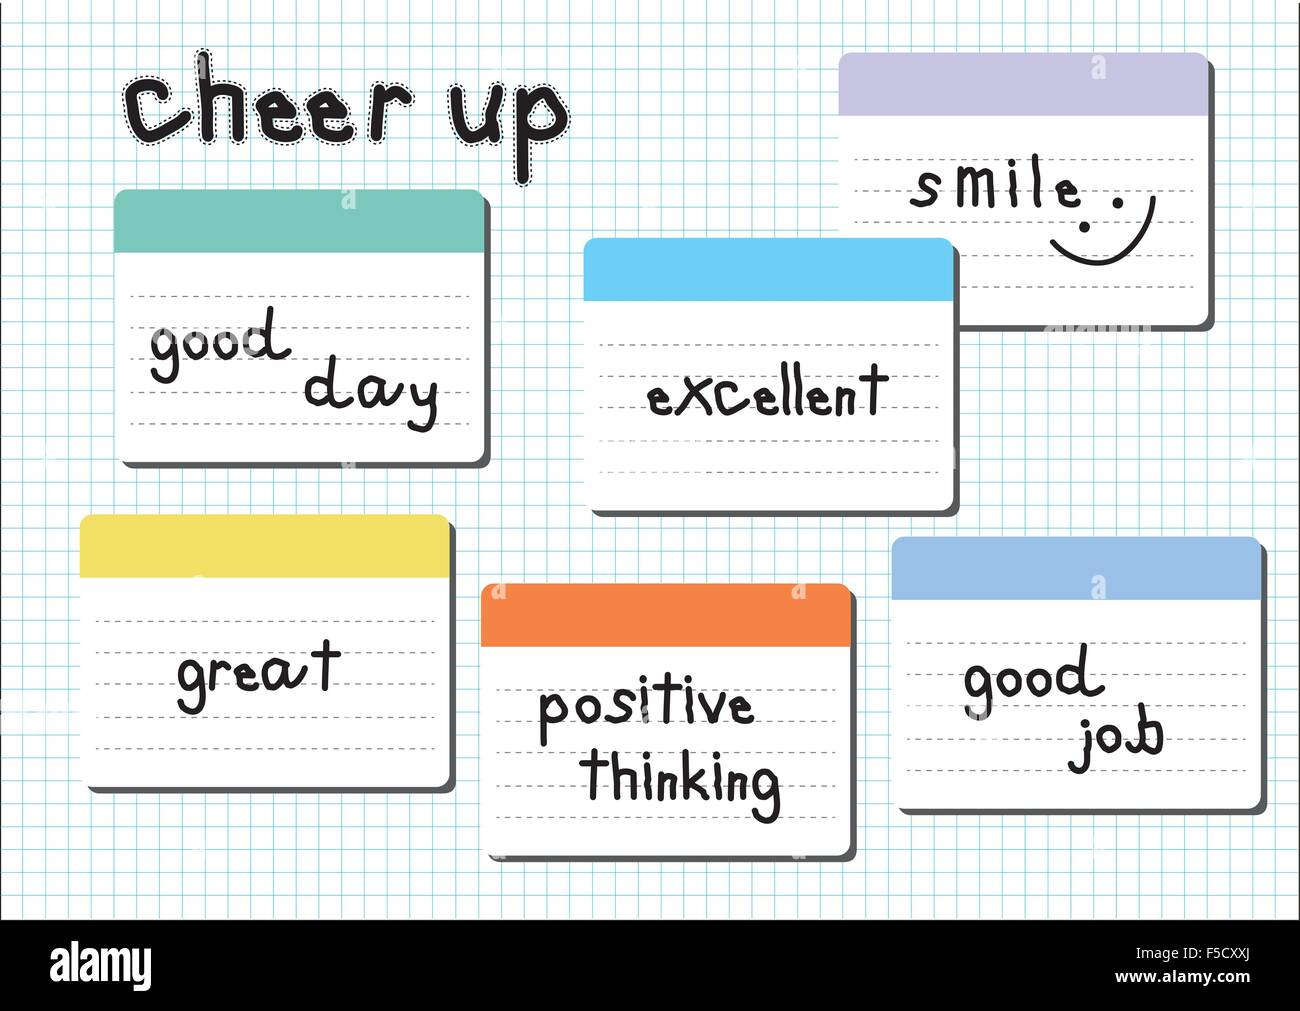 cheer up wording post it white graph paper sheet background - Stock Image